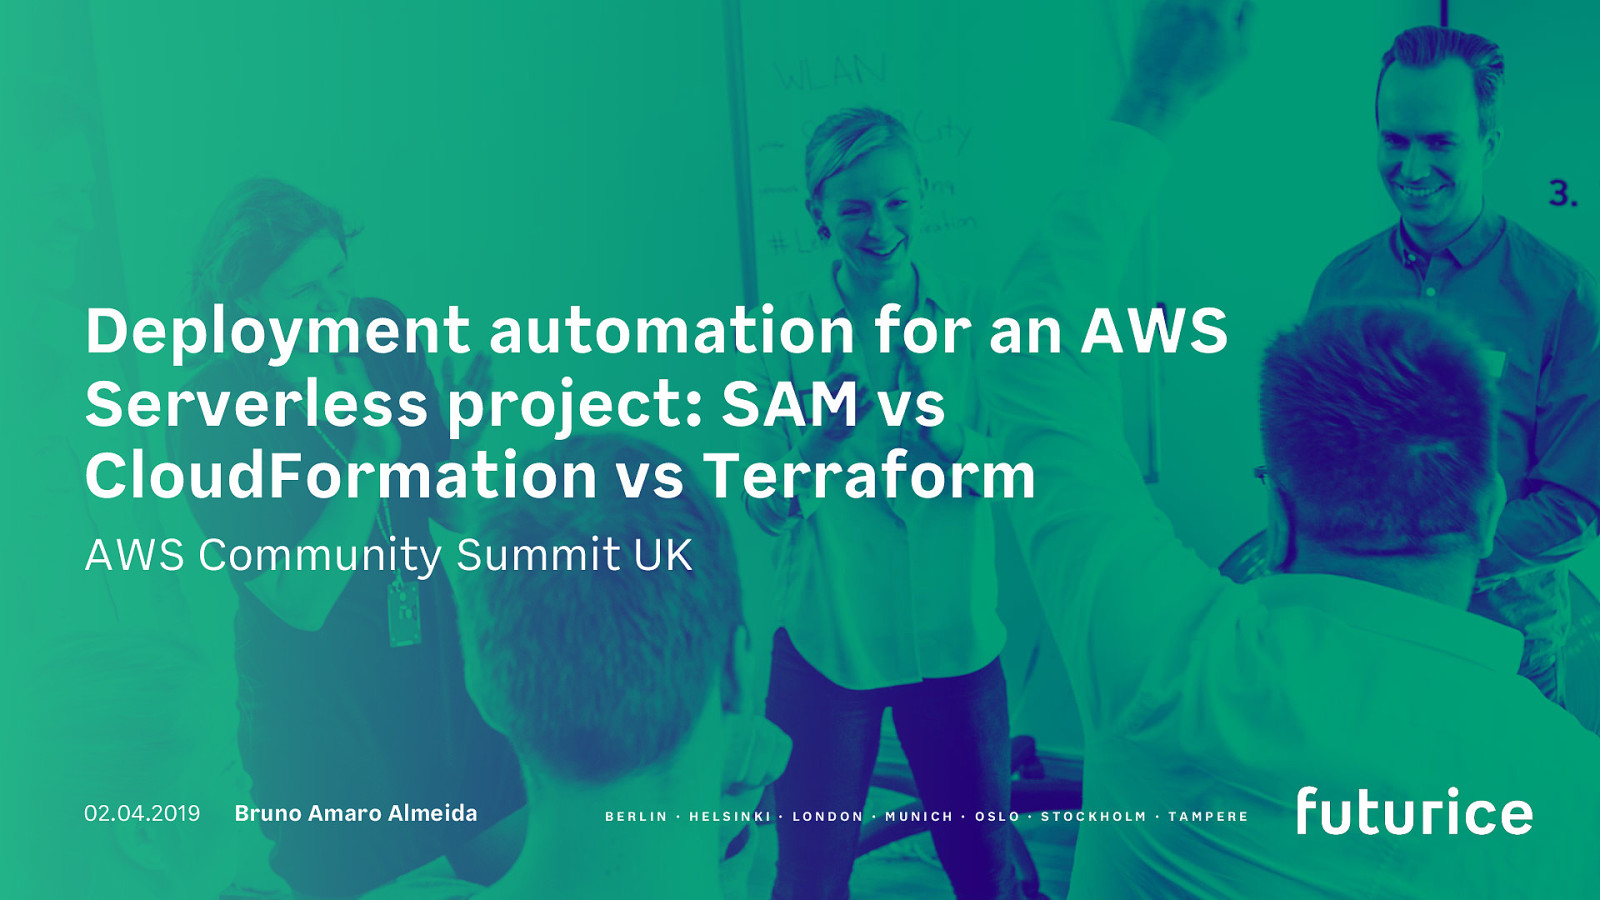 Deployment automation for an AWS Serverless project: SAM vs CloudFormation vs Terraform